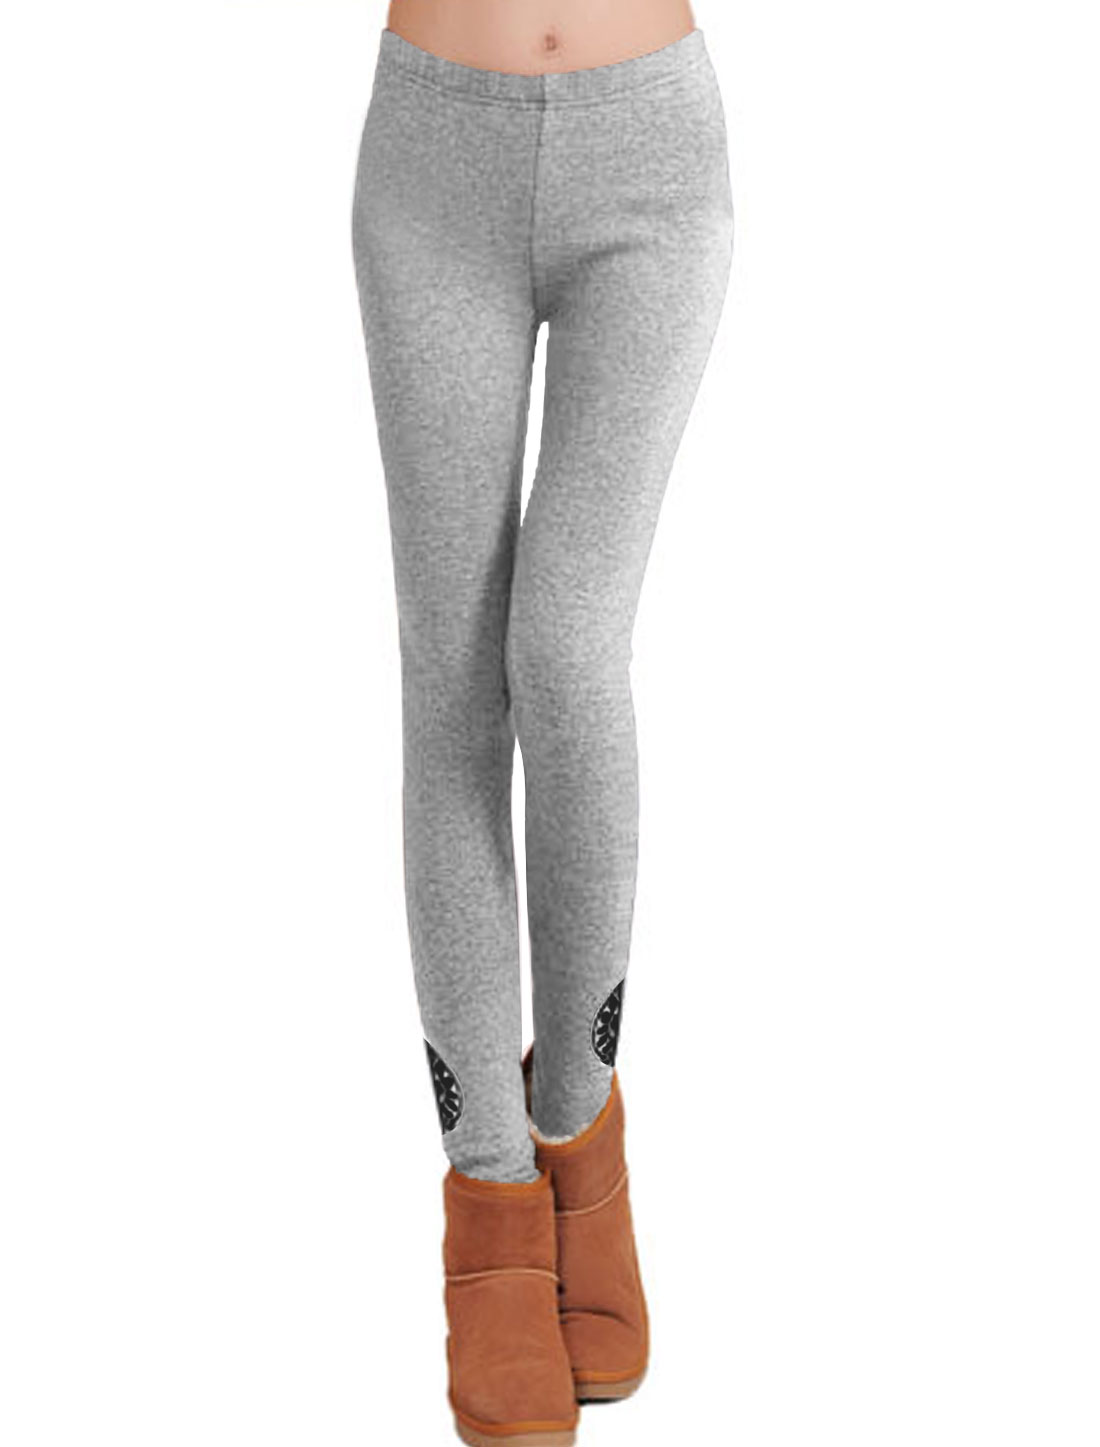 Ladies Light Gray Mid Rise Stretchy Printed Novelty Fashion Leggings XS